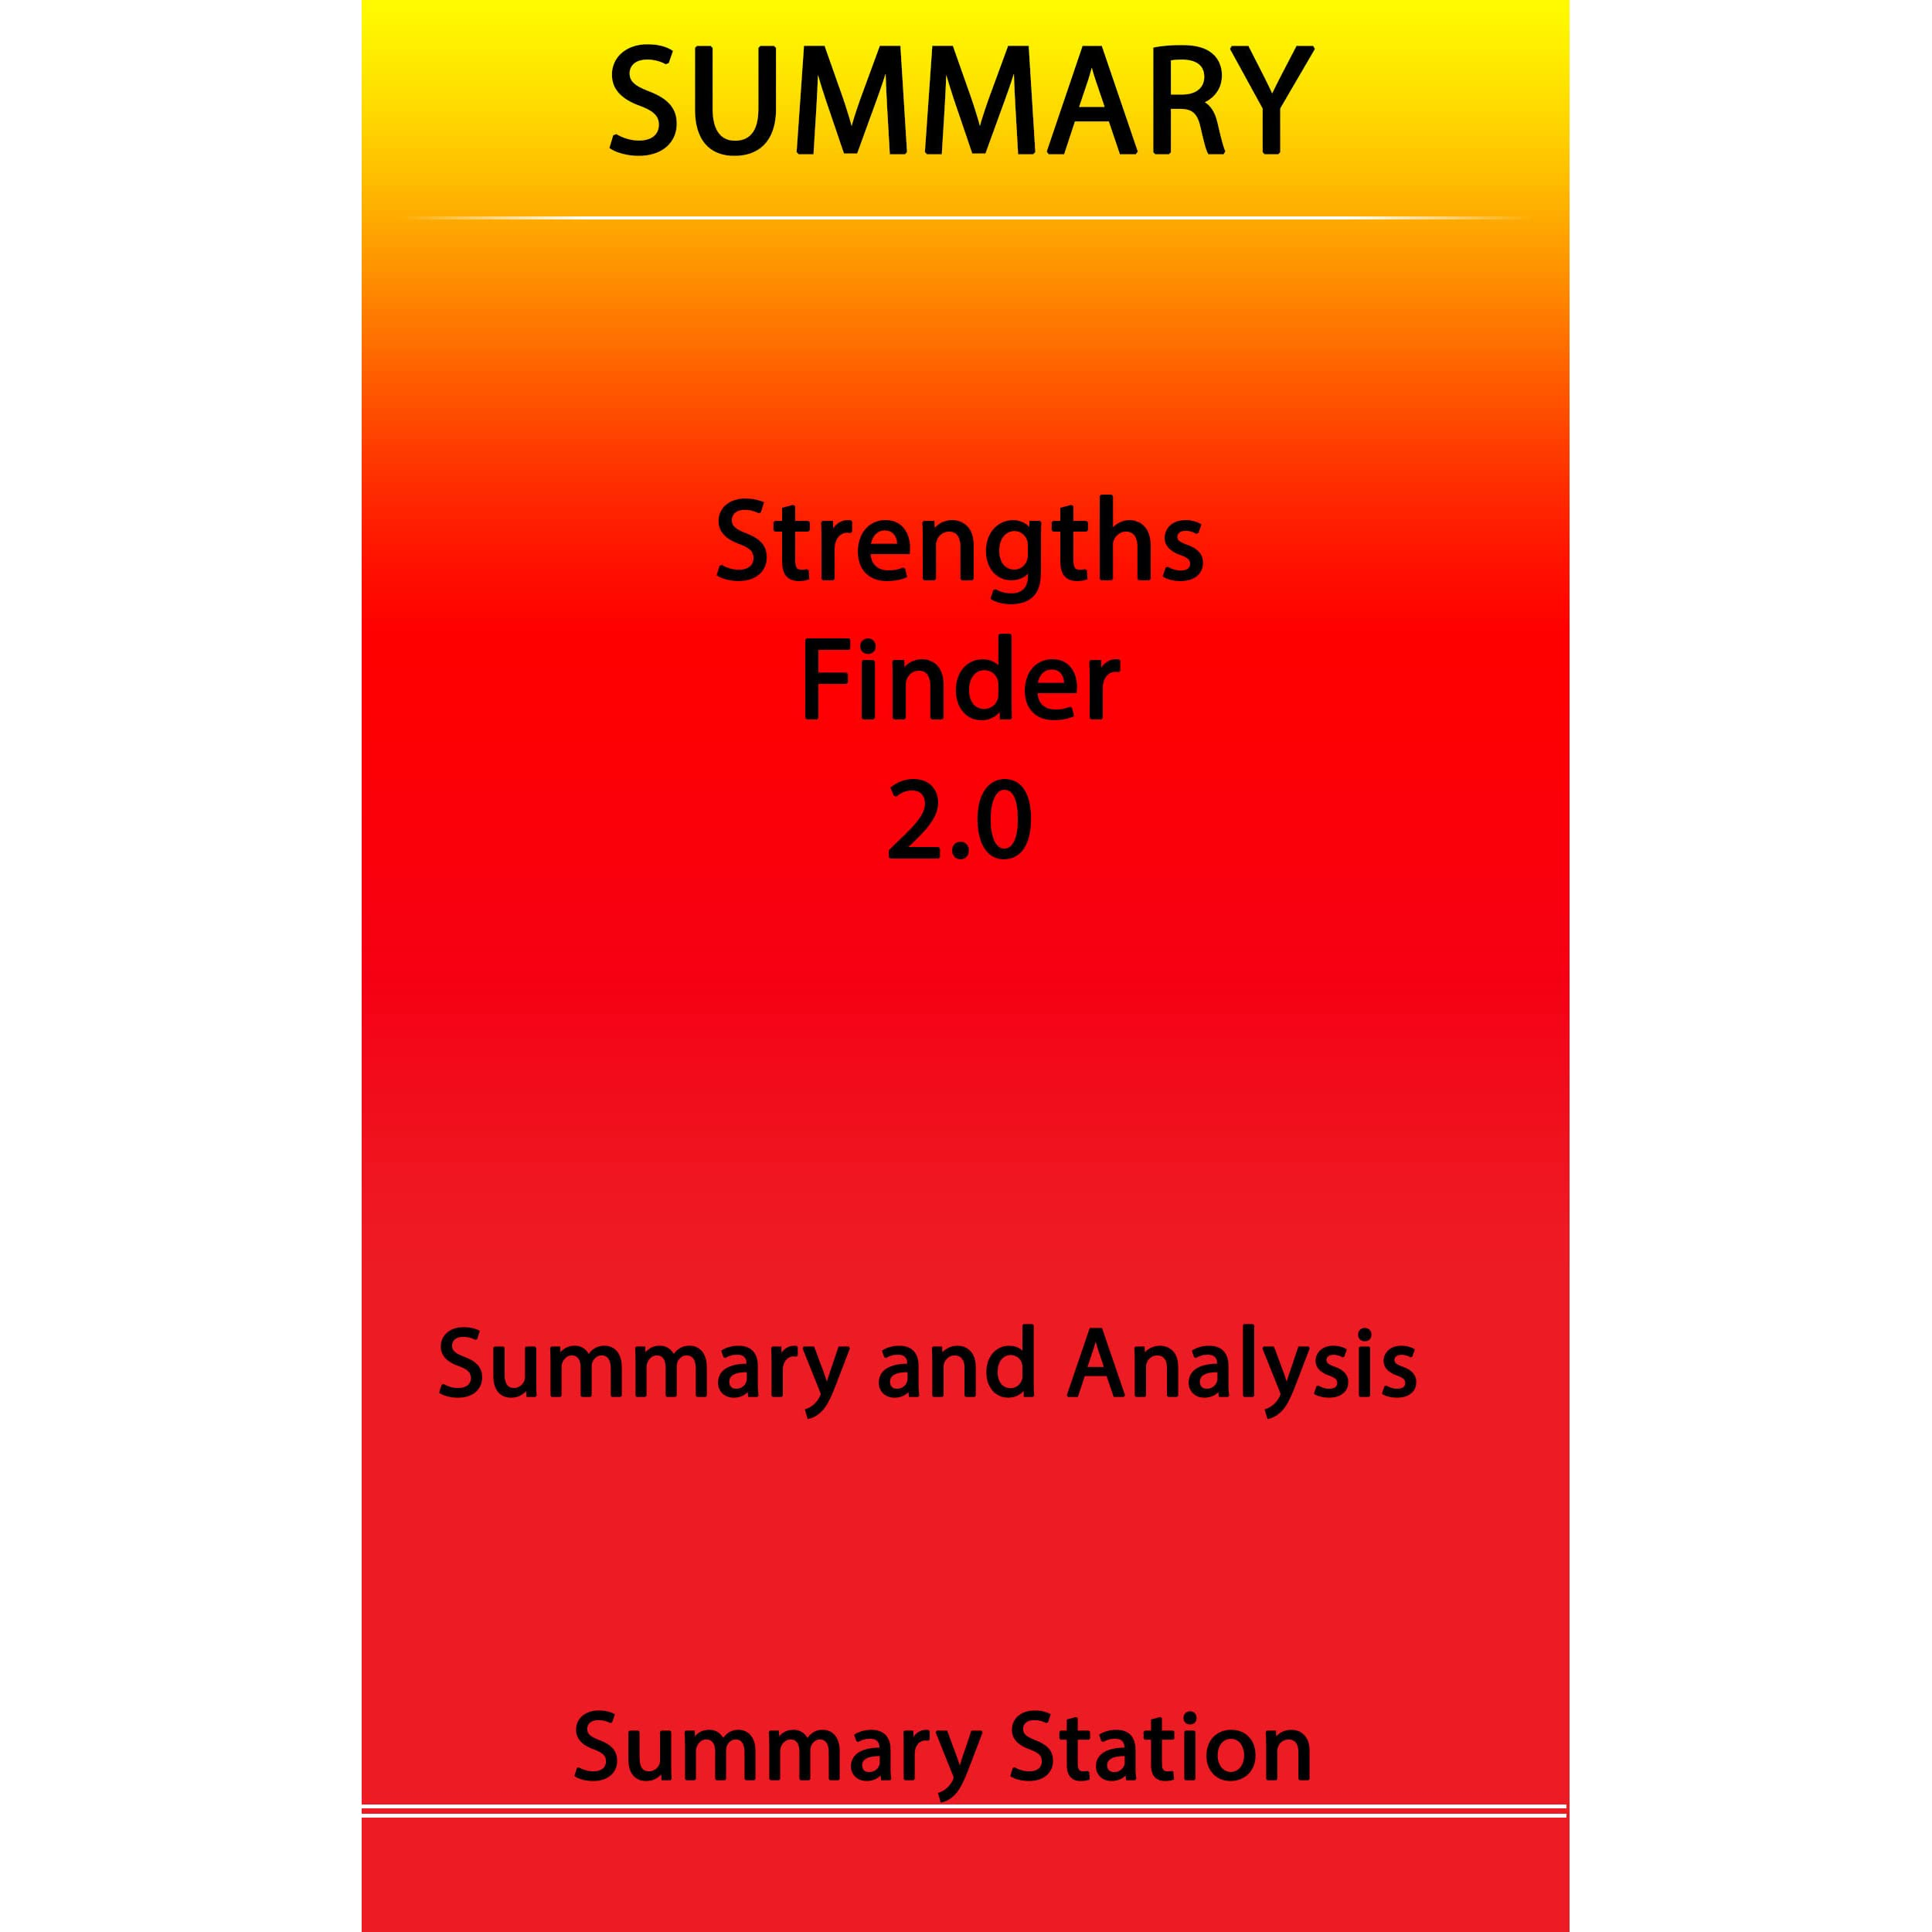 strength finder Looking for the ideal banana strengthsfinder gifts come check out our giant selection of t-shirts, mugs, tote bags, stickers and more cafepress brings your passions to life with the perfect item for every occasion.